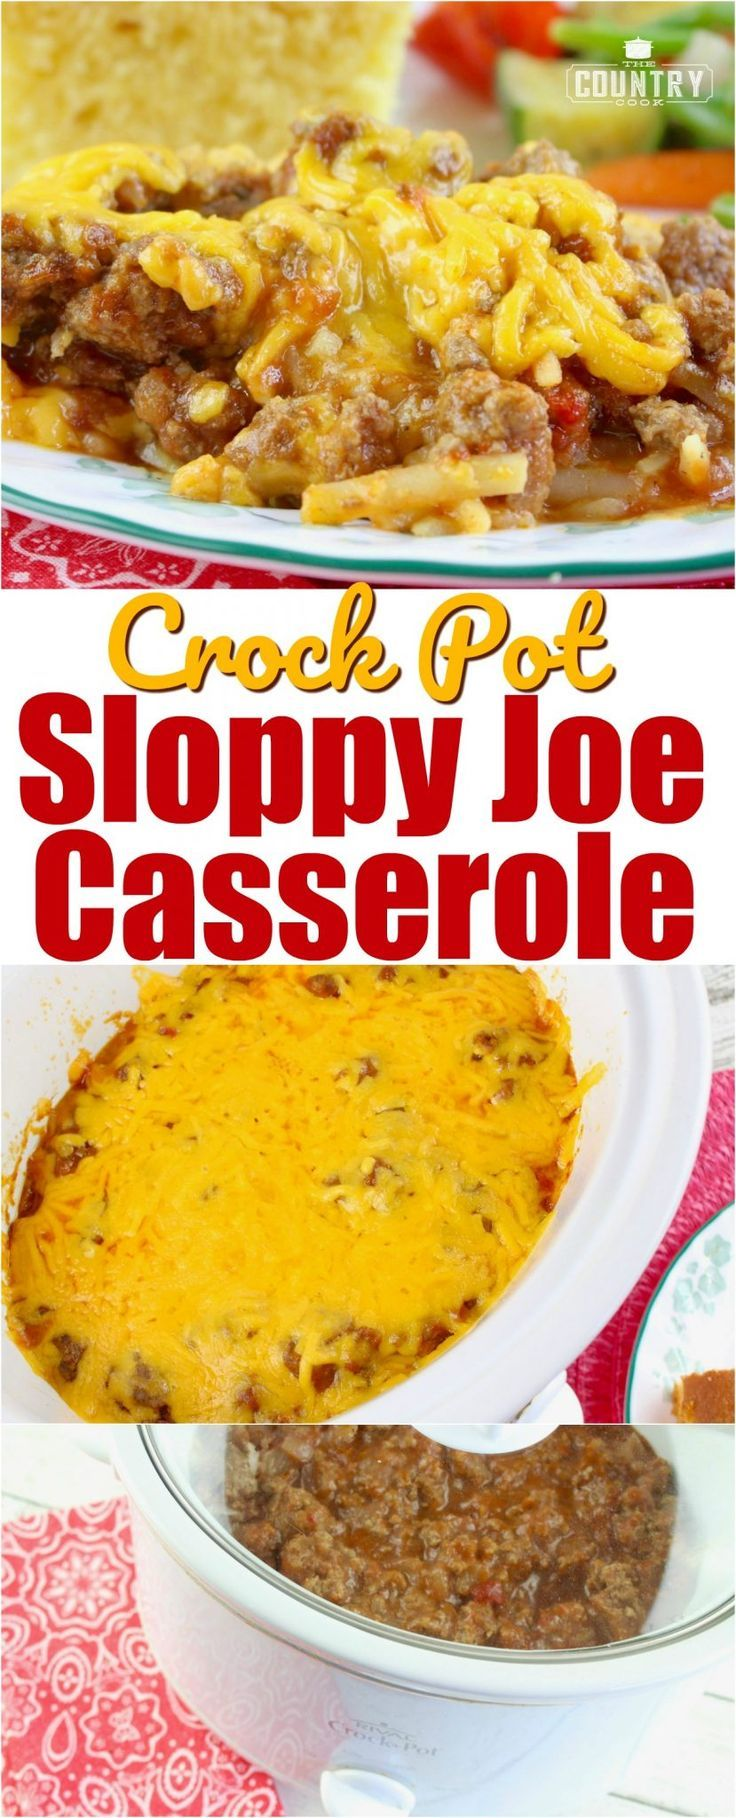 Crock Pot Sloppy Joe Casserole with Hash Brown Potatoes recipe from The Country Cook